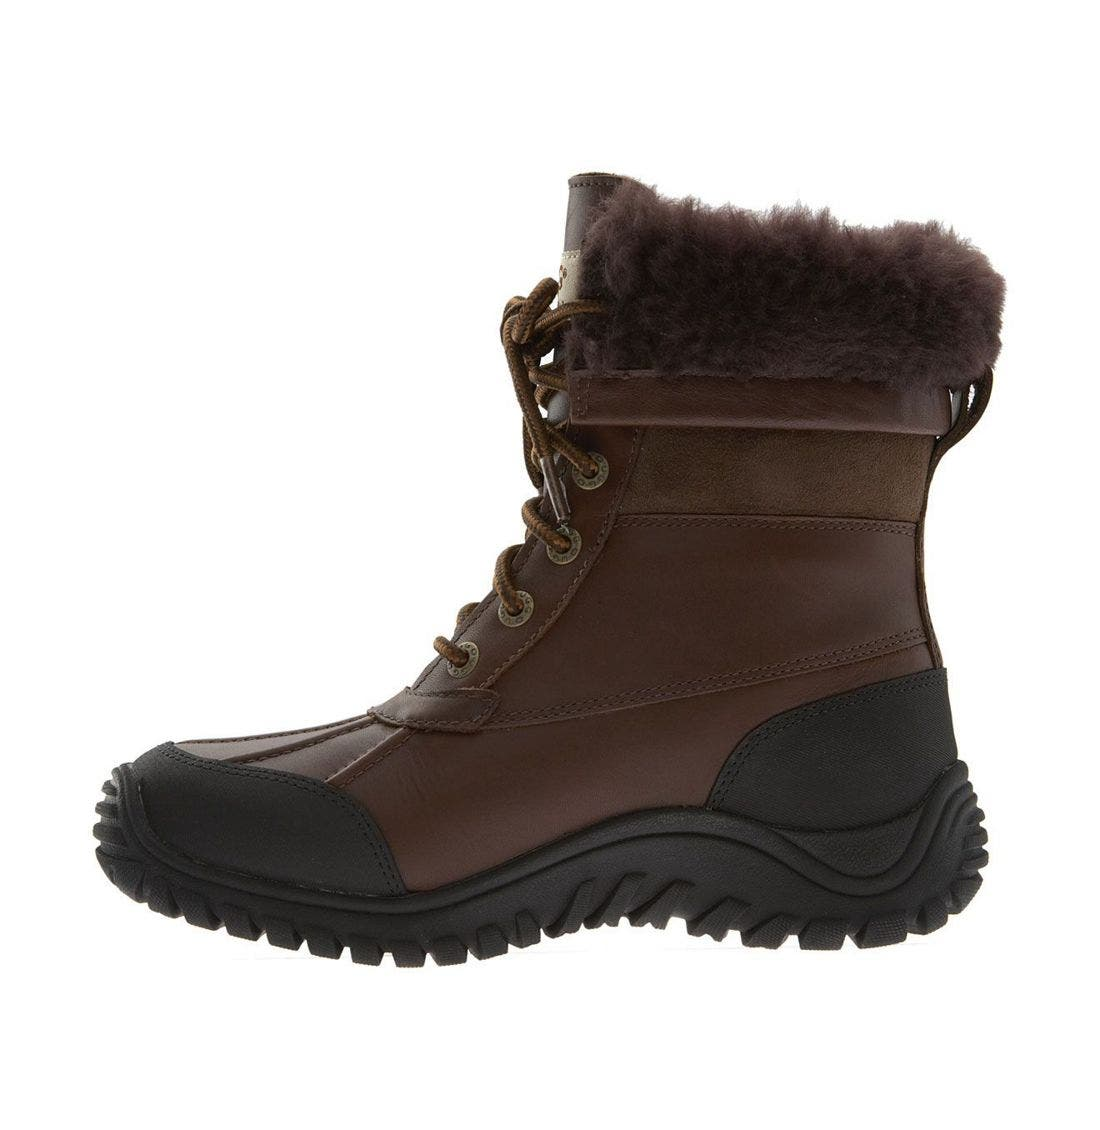 Adirondack II Waterproof Boot,                             Alternate thumbnail 25, color,